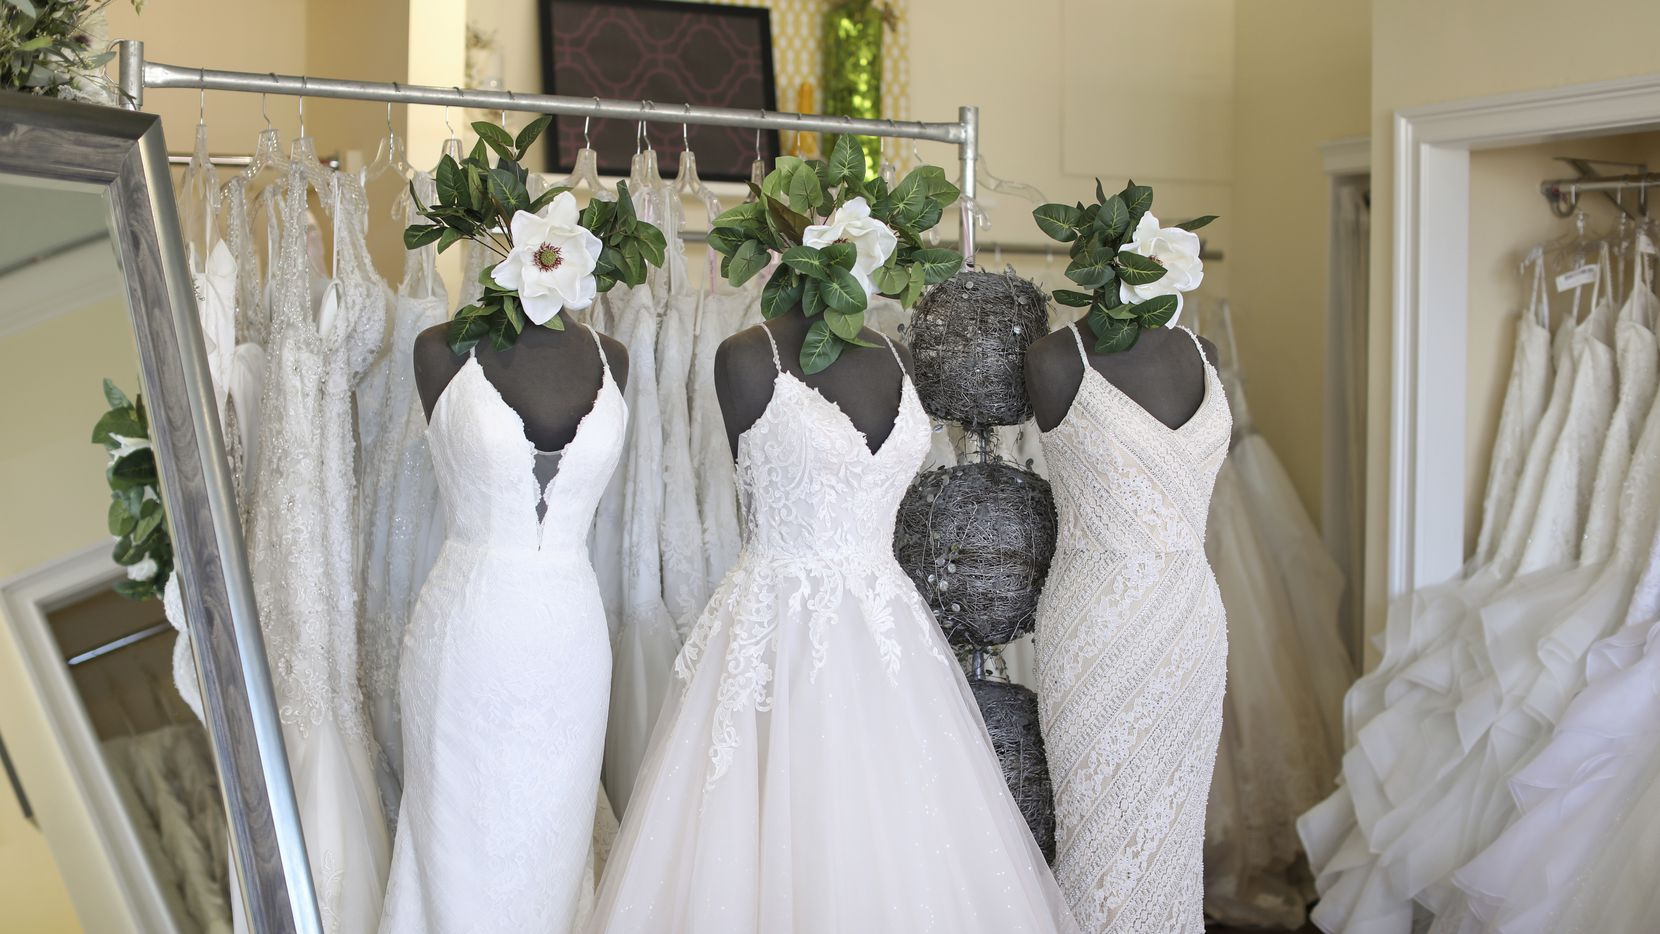 Wedding dresses are displayed at Complete Bridal, a shop in East Dundee, Ill.